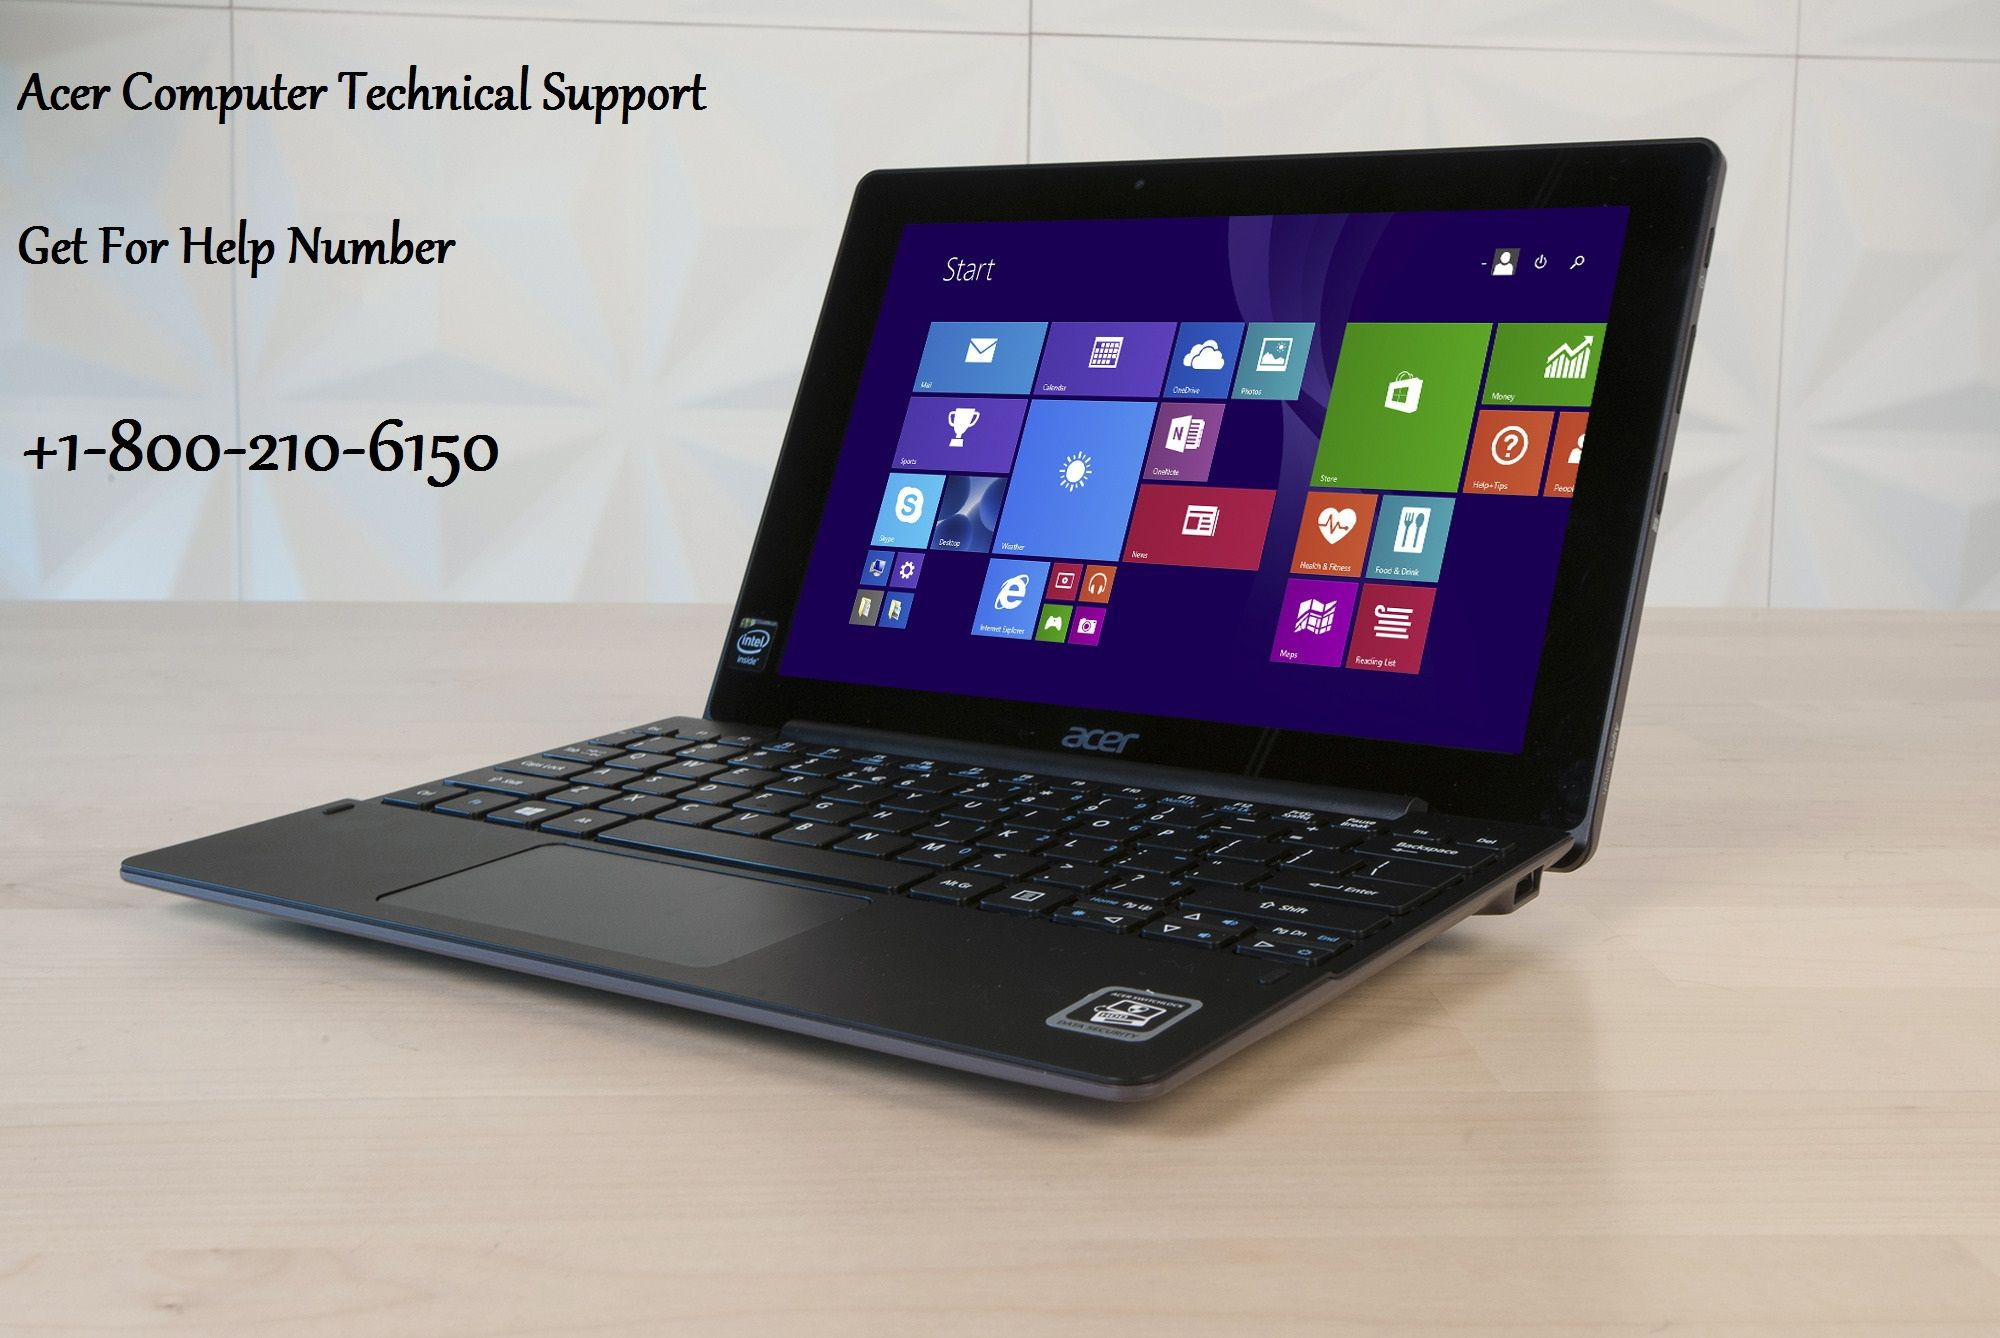 Acer technical support phone number +18002106150 expert